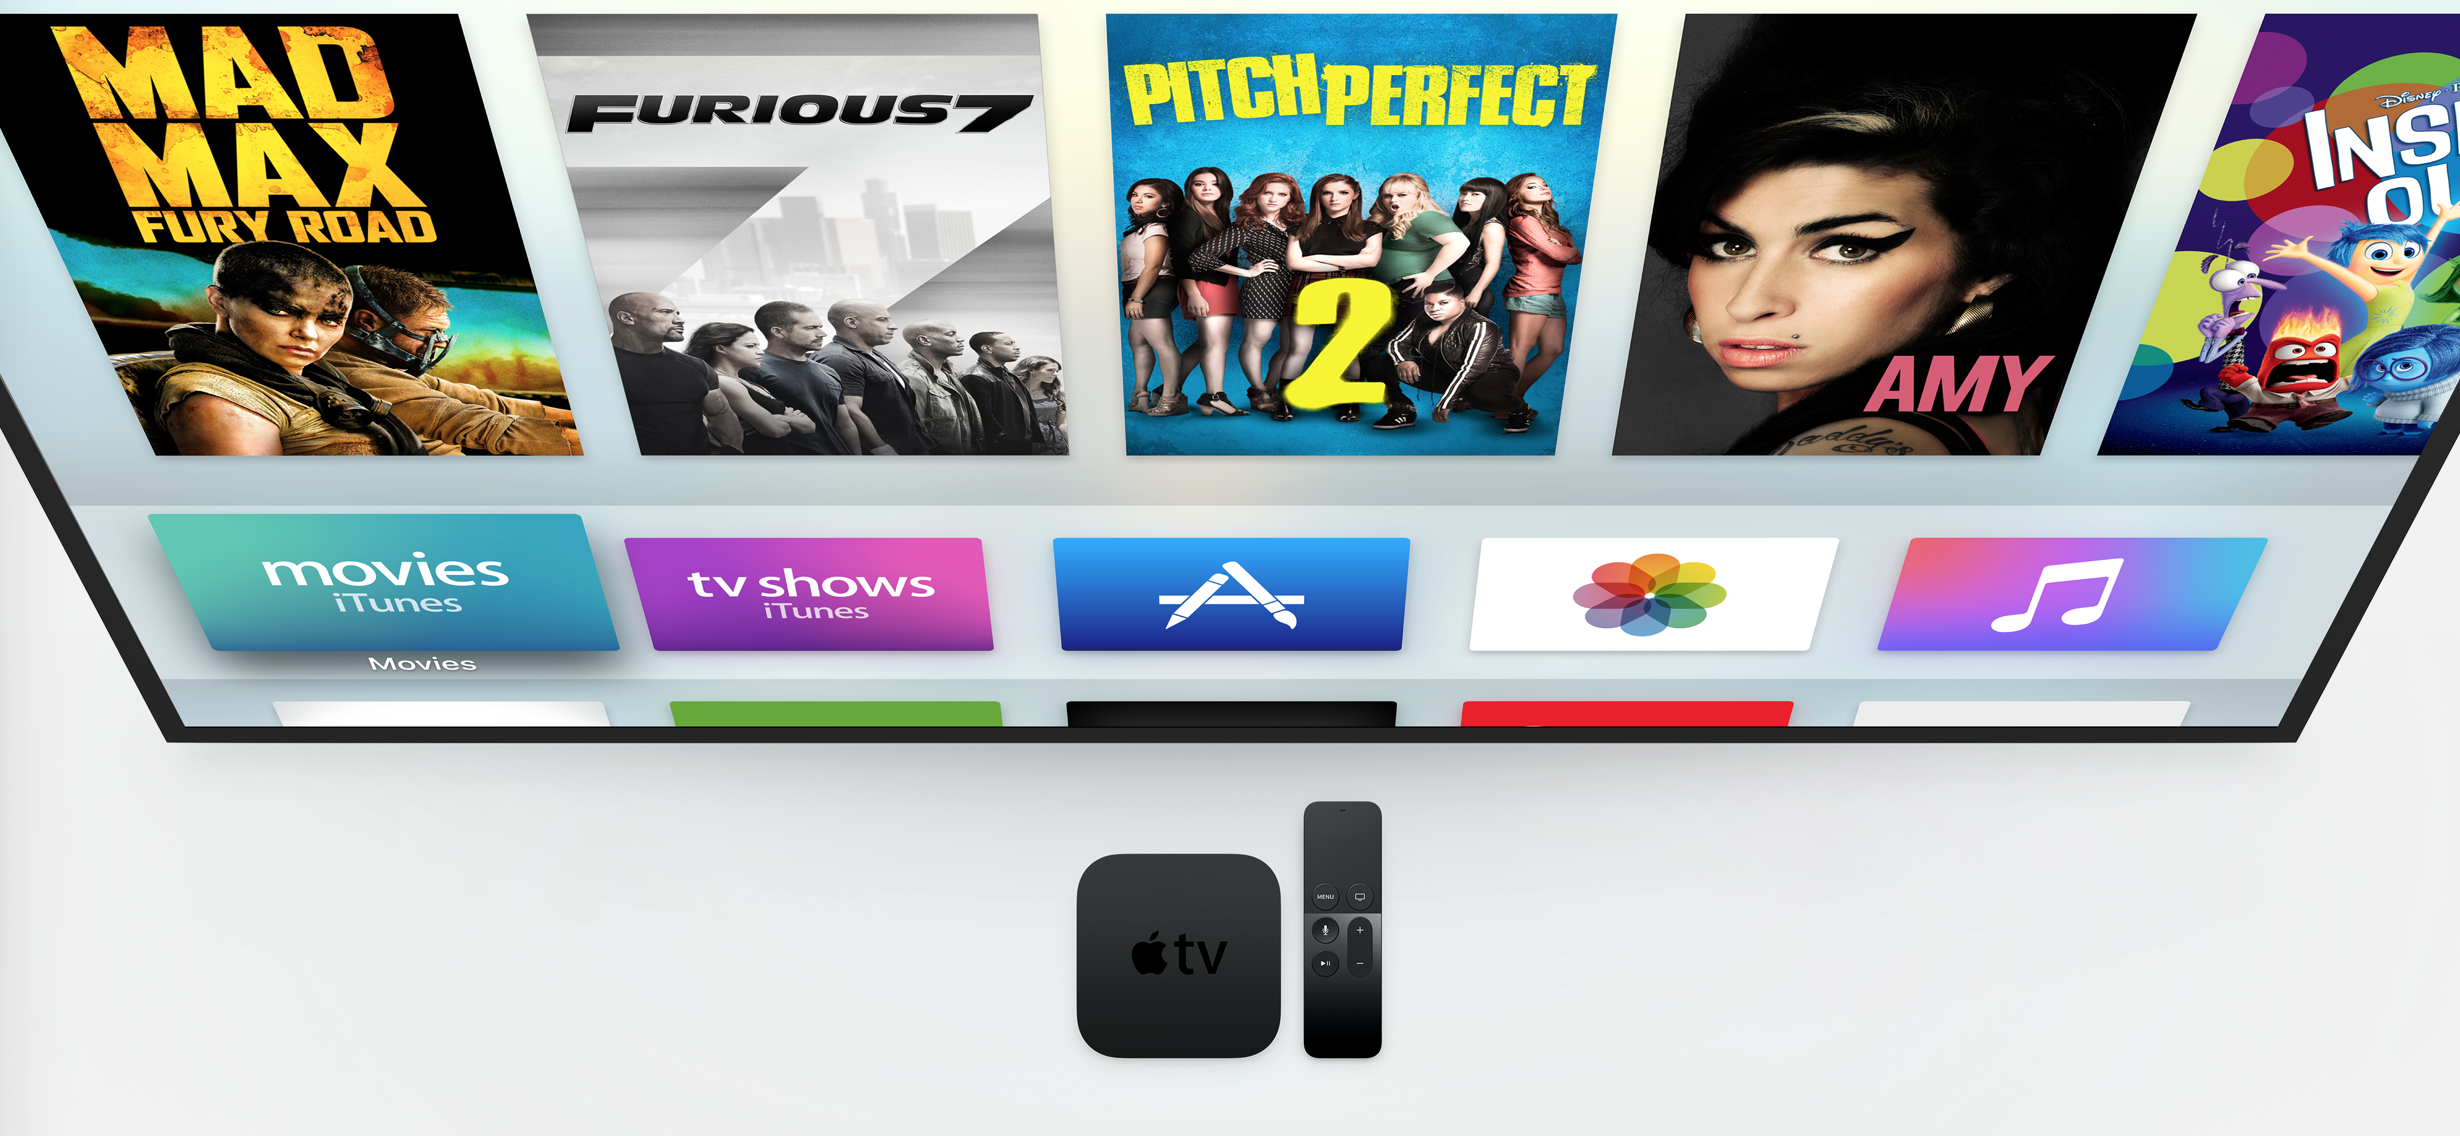 Apple TV 4 gets limited Siri support for Apple Music on tvOS 9.1 beta